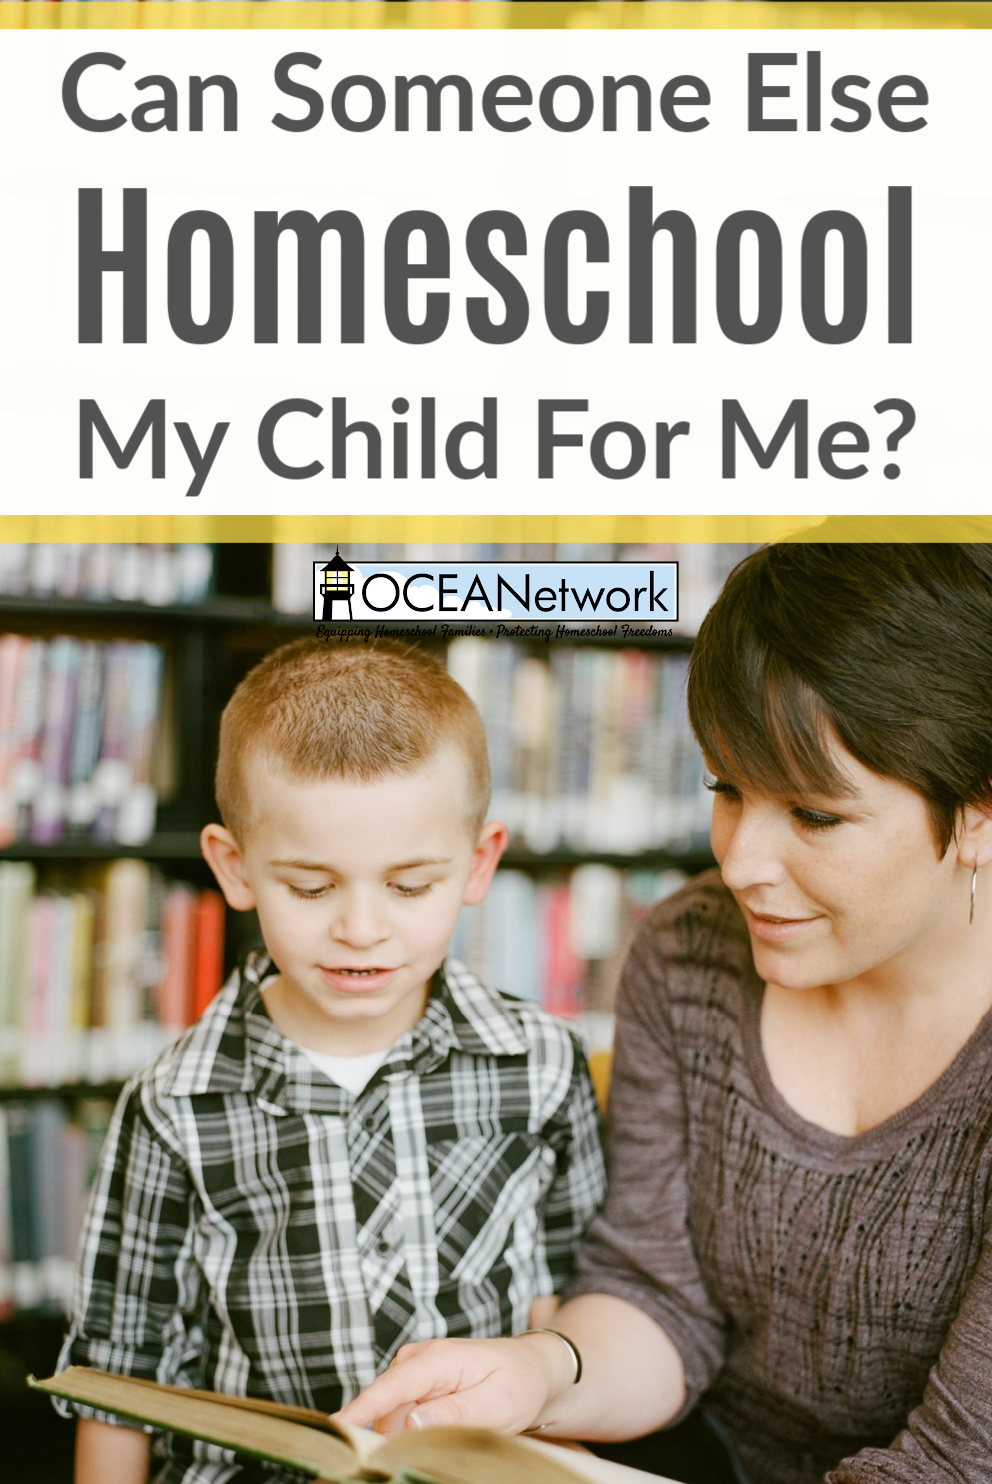 Are you trying to find a way to homeschool while working full time or during challenging seasons? Considering hiring someone to help or joining a group that will teach your child for you, such as homeschool pods or private teachers? Here are important things you need to know before you hire someone to homeschool your child.